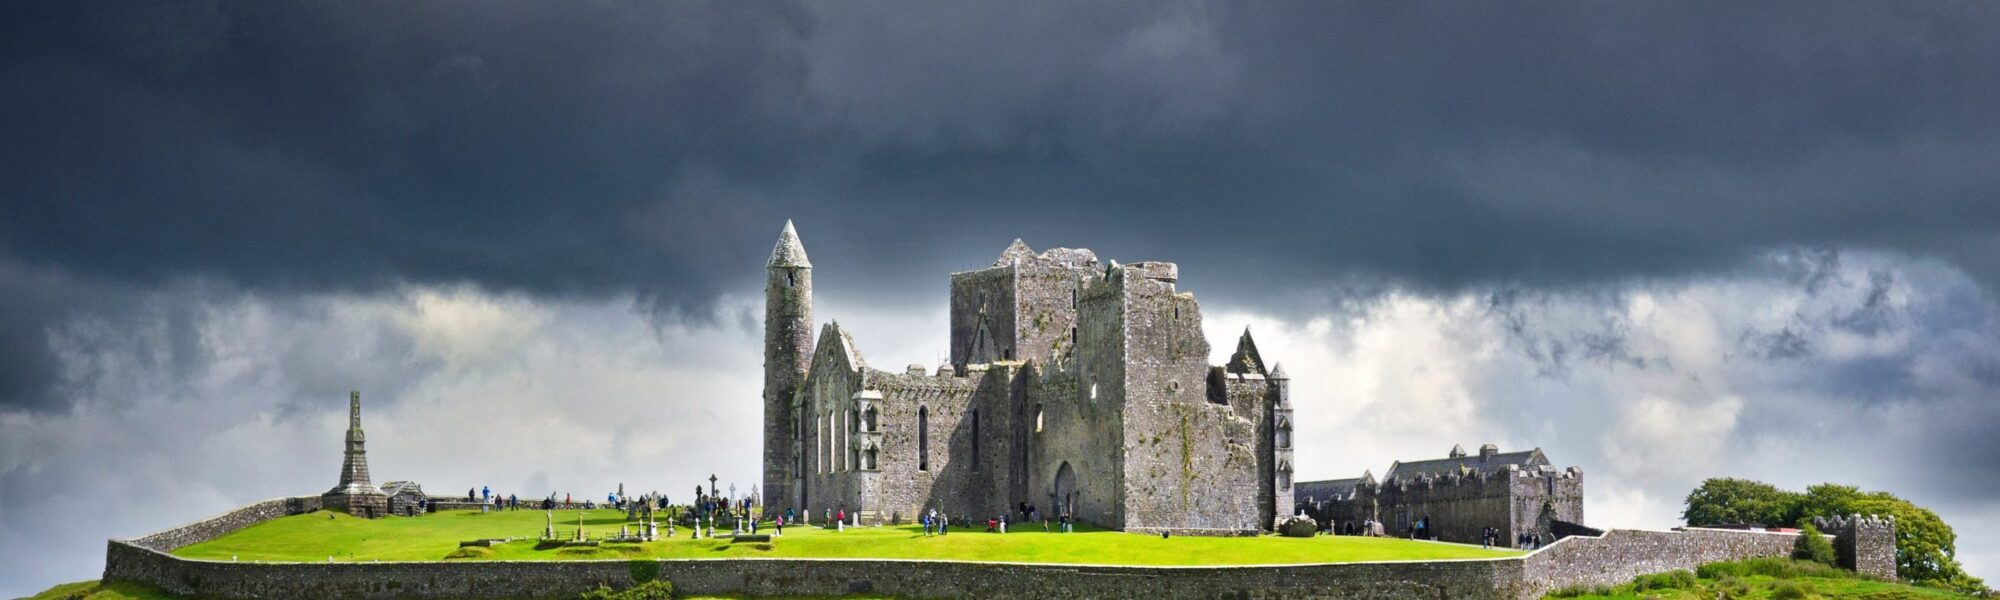 The Rock of Cashel - © Petair